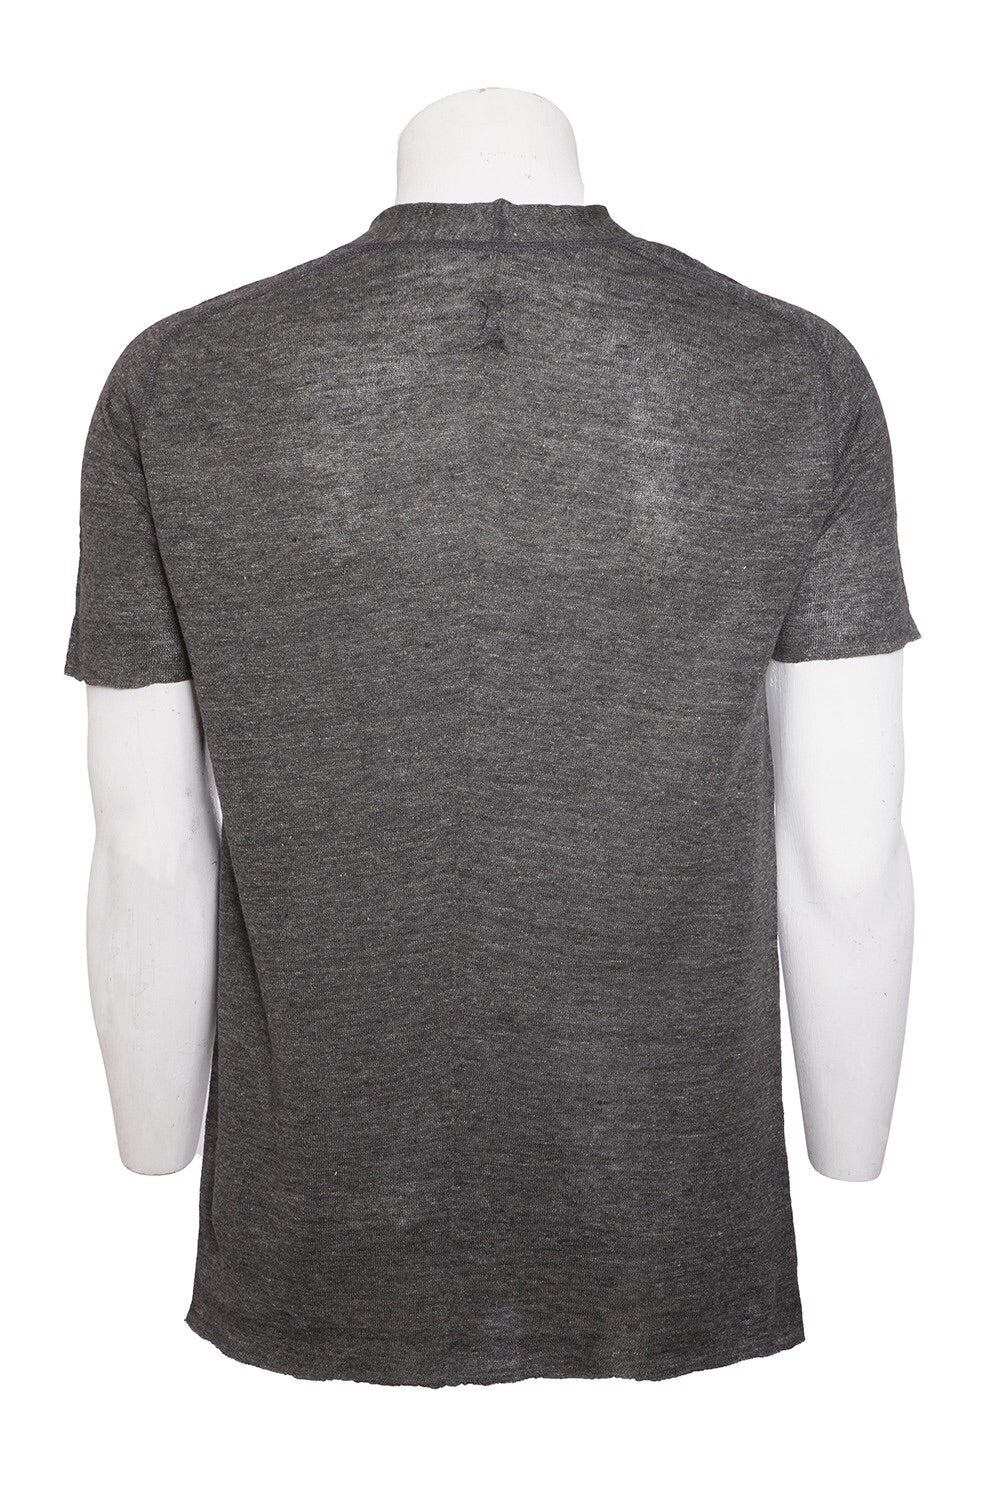 Hannes Roether Black Linen Knit T-Shirt